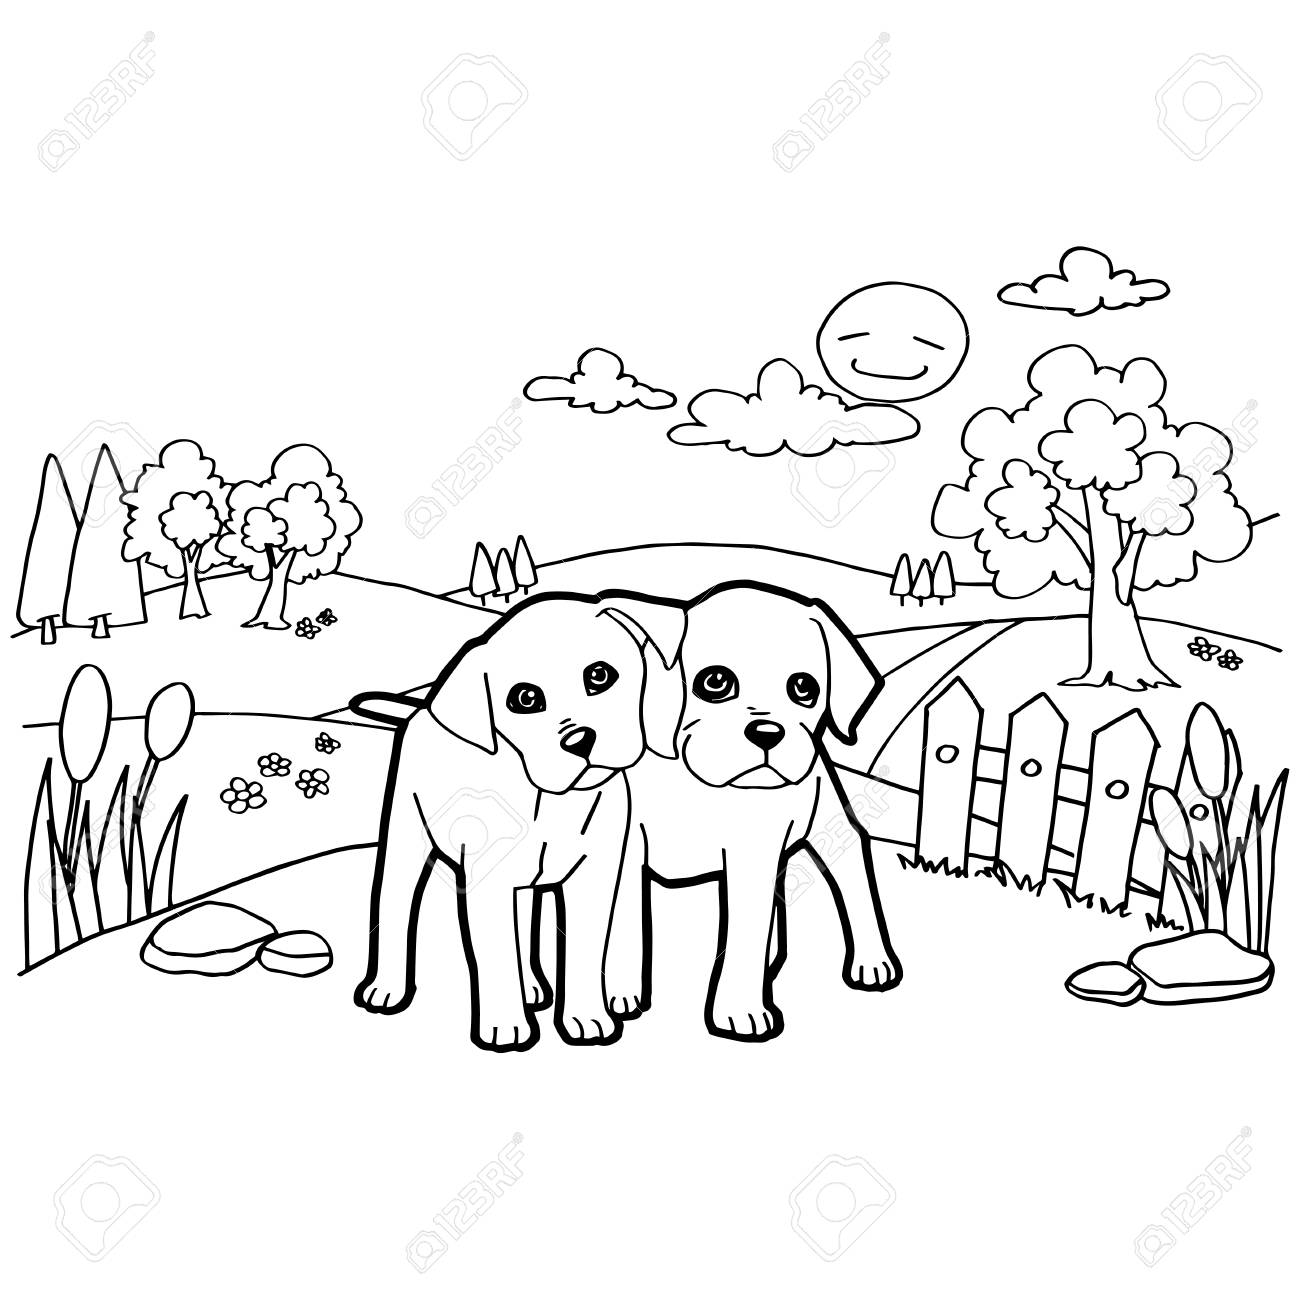 Coloring Book With Dog Royalty Free Cliparts, Vectors, And Stock ...